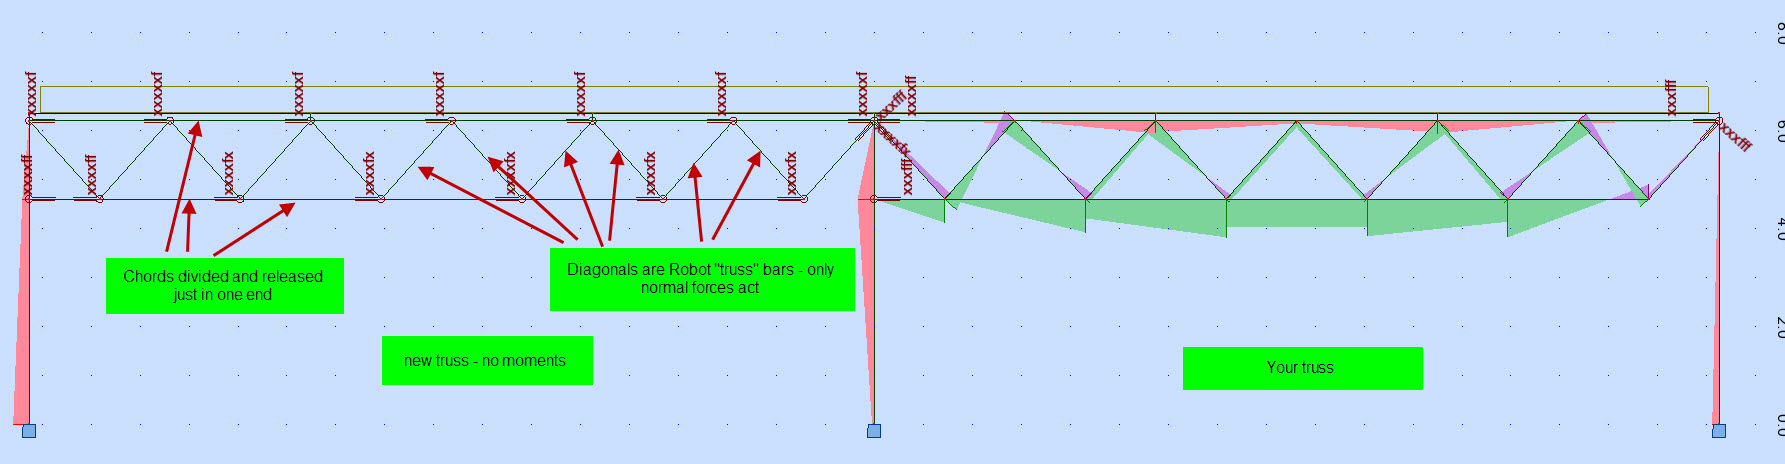 Truss bending moment diagram wiring diagram database solved steel truss mysterious moment autodesk community robot rh forums autodesk com beam deflection diagrams shear force diagram calculator ccuart Gallery